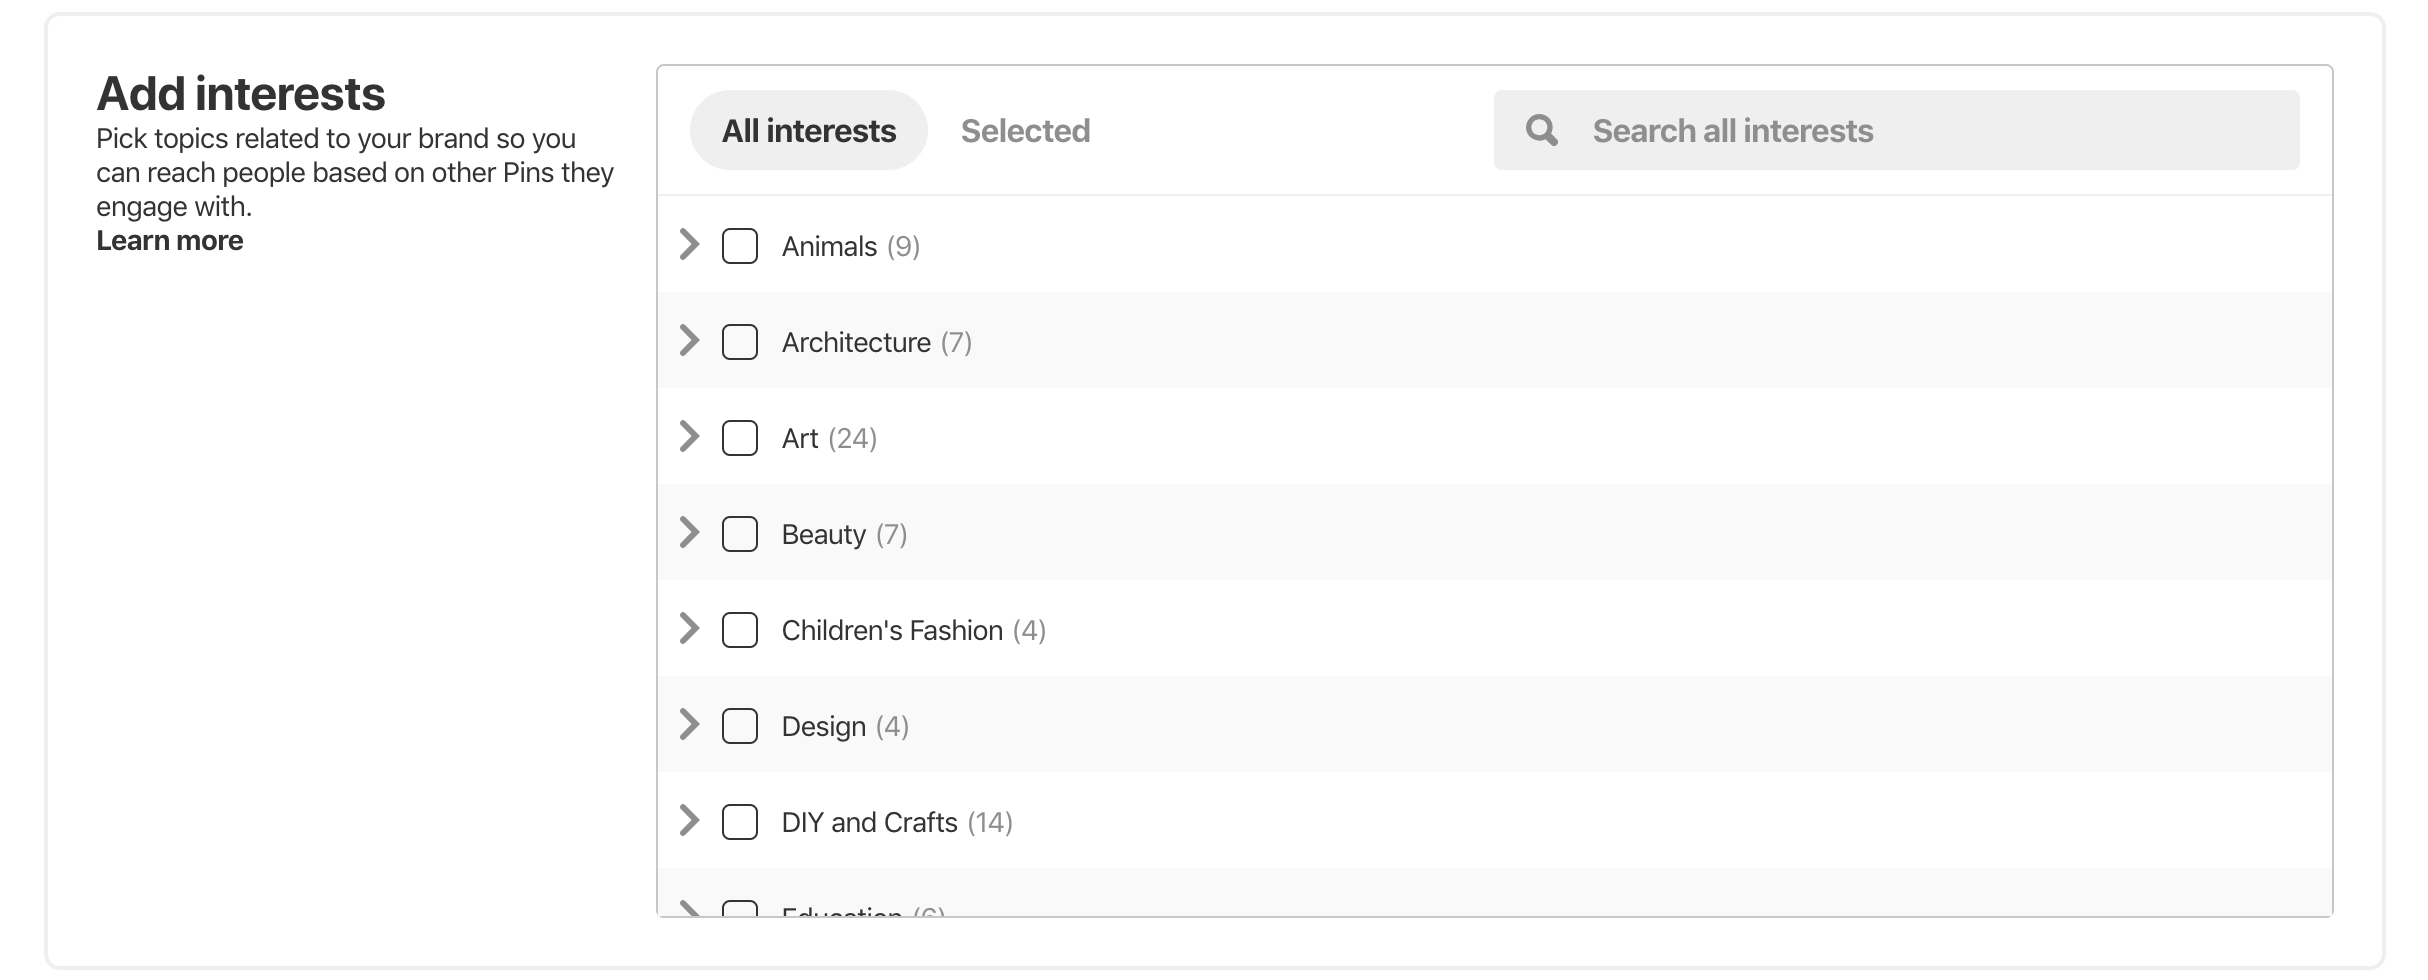 Pinterest Advertising Targeting Options Interests